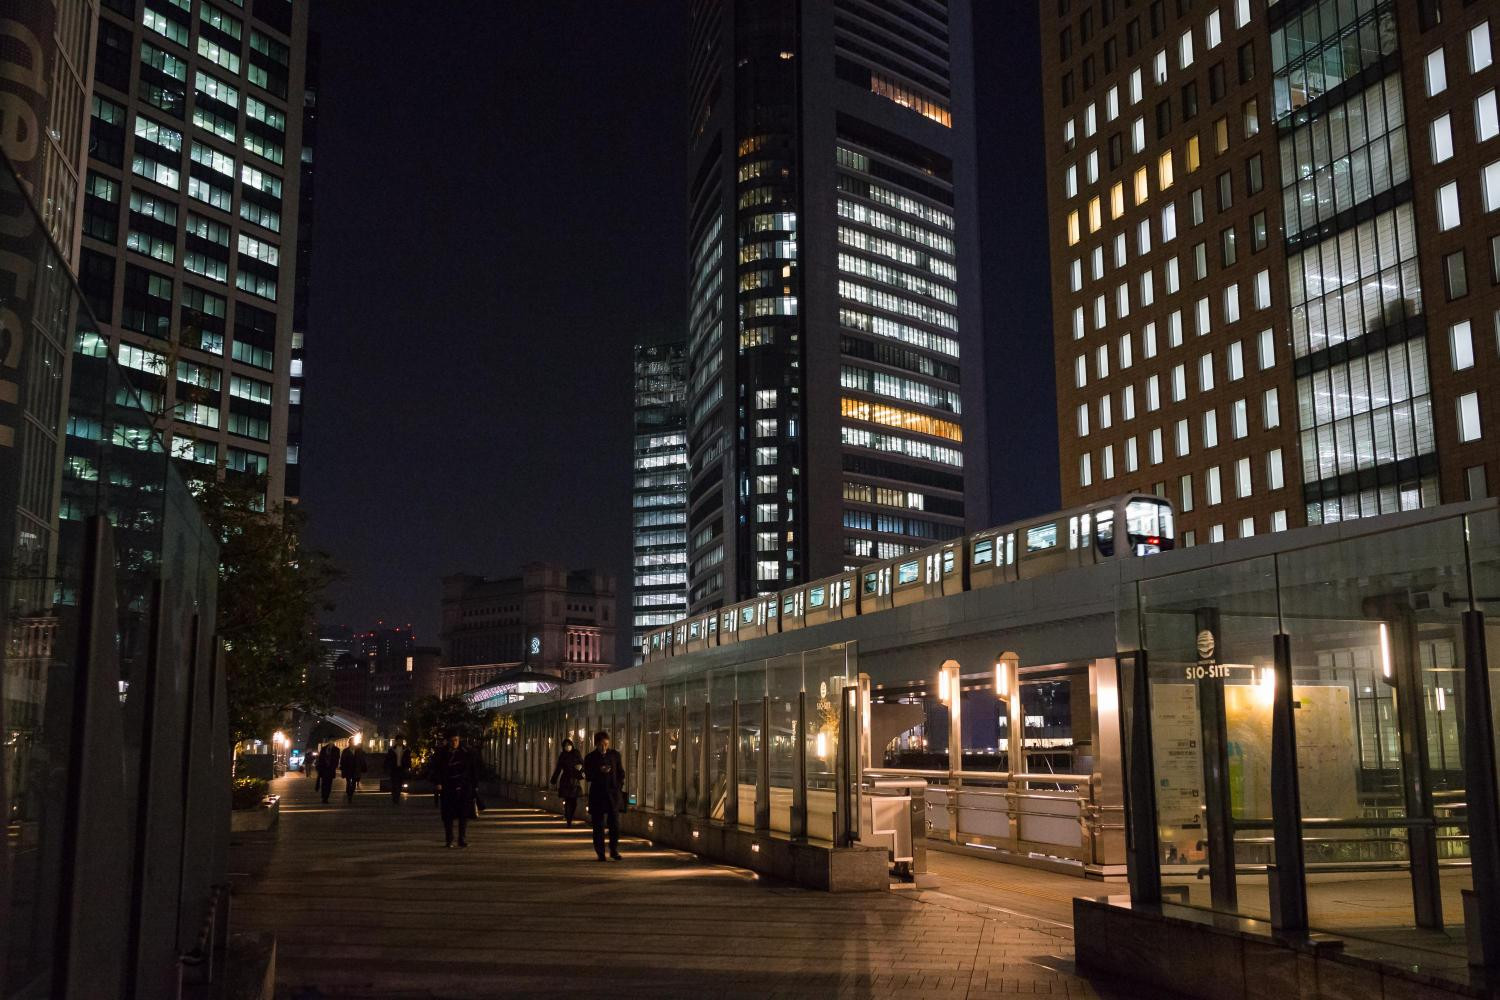 Night View Of Shiodome Siosite Ambassadors Japan